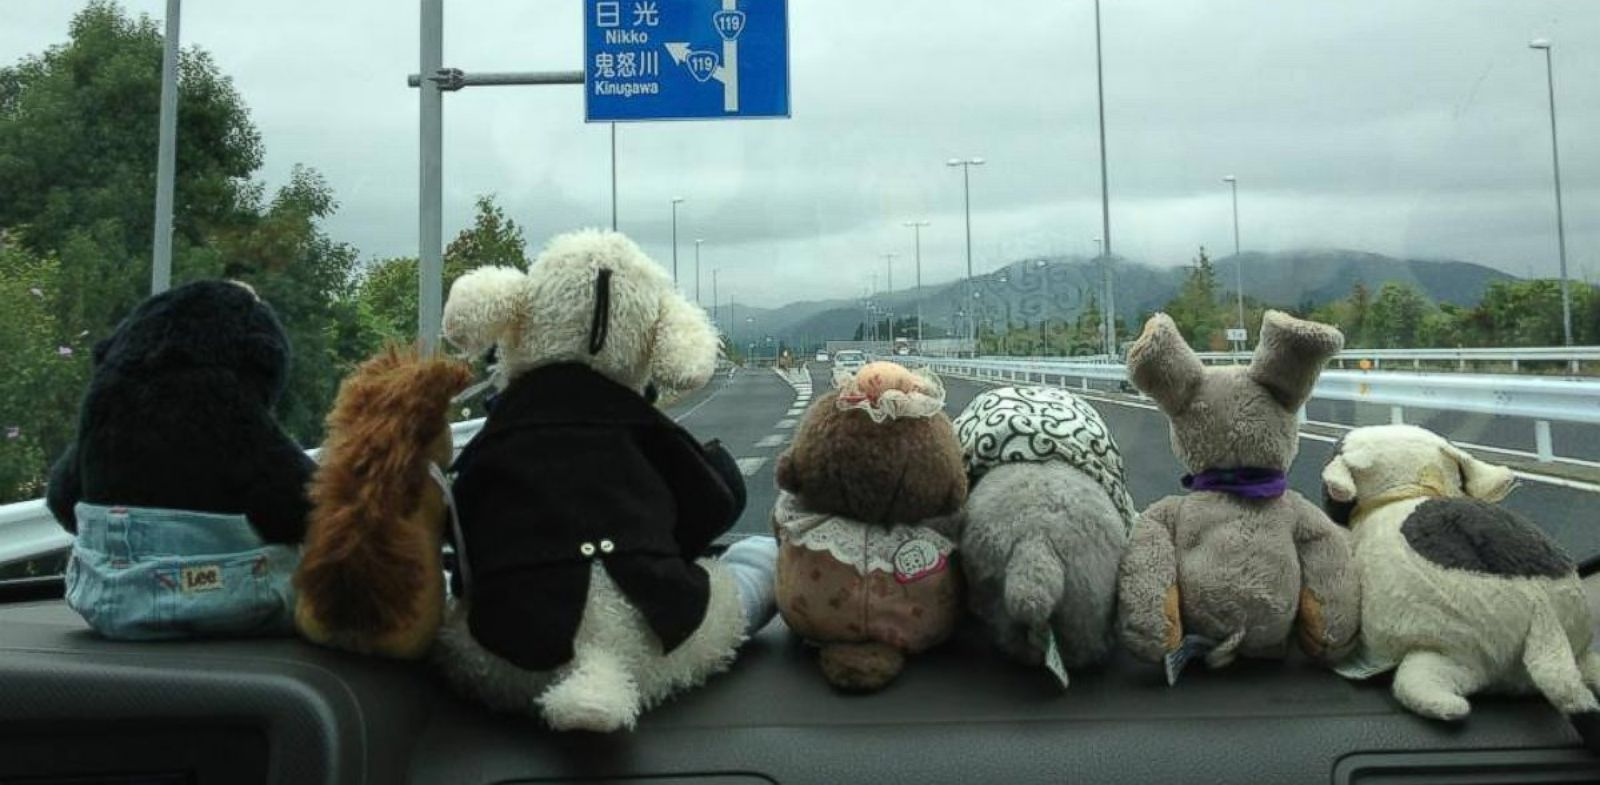 PHOTO: Unagi Travel is a Japanese travel agency that takes stuffed animals on trips when their owners are unable to leave home themselves.